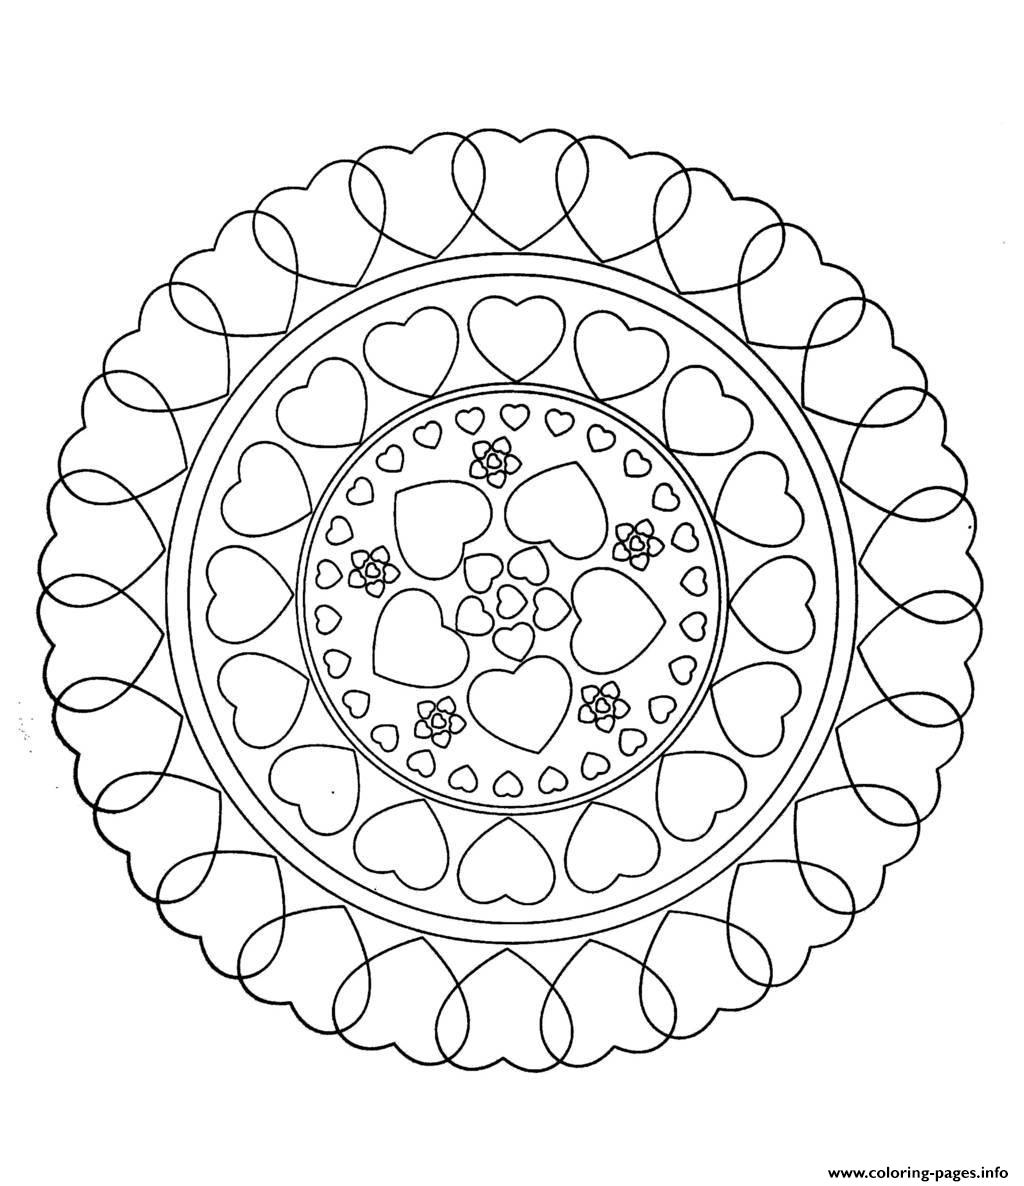 Free mandala to color hearts love coloring pages printable for Love mandala coloring pages